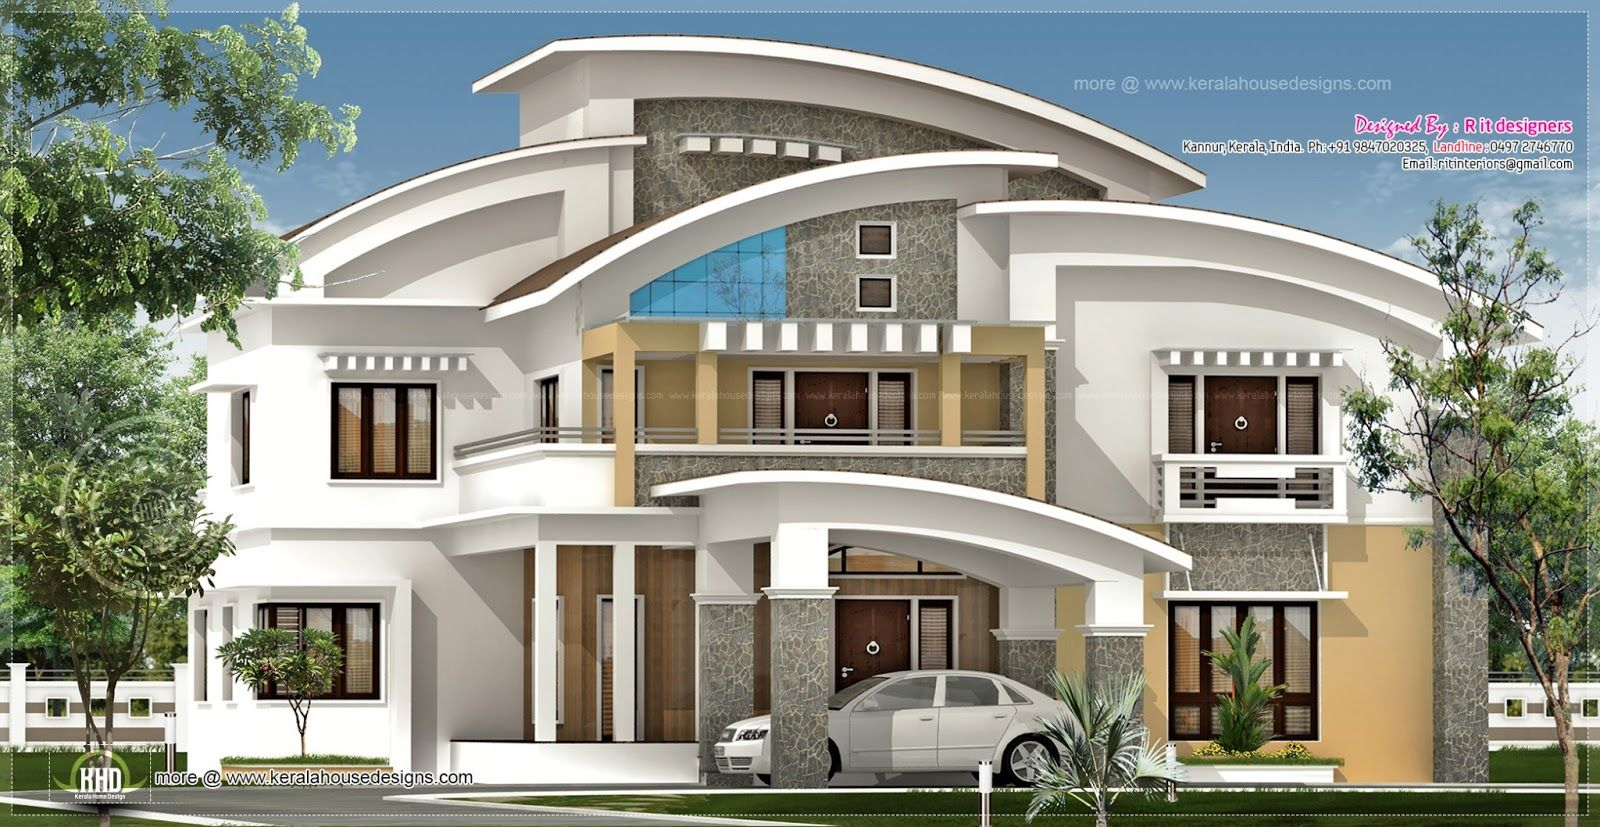 Awesome luxury homes plans 8 french country luxury home for Home exterior design india